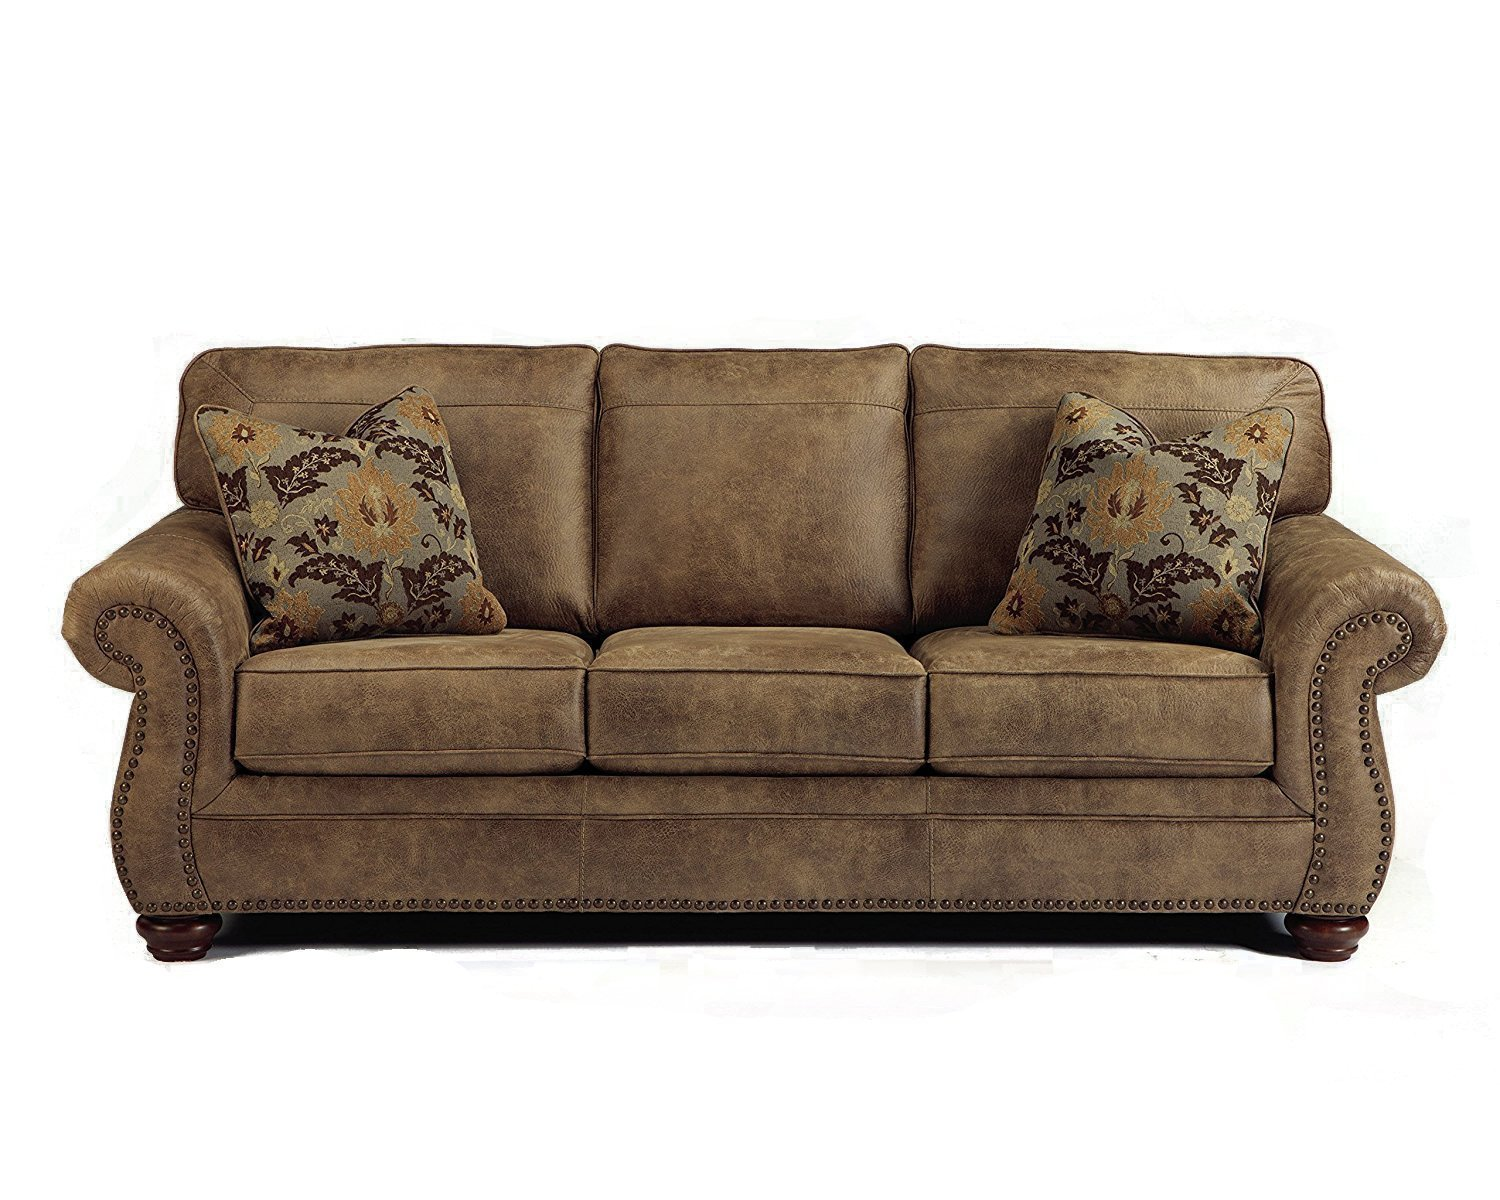 Awe Inspiring Distressed Leather Sofa Review The Class Statement Homeindec Pdpeps Interior Chair Design Pdpepsorg